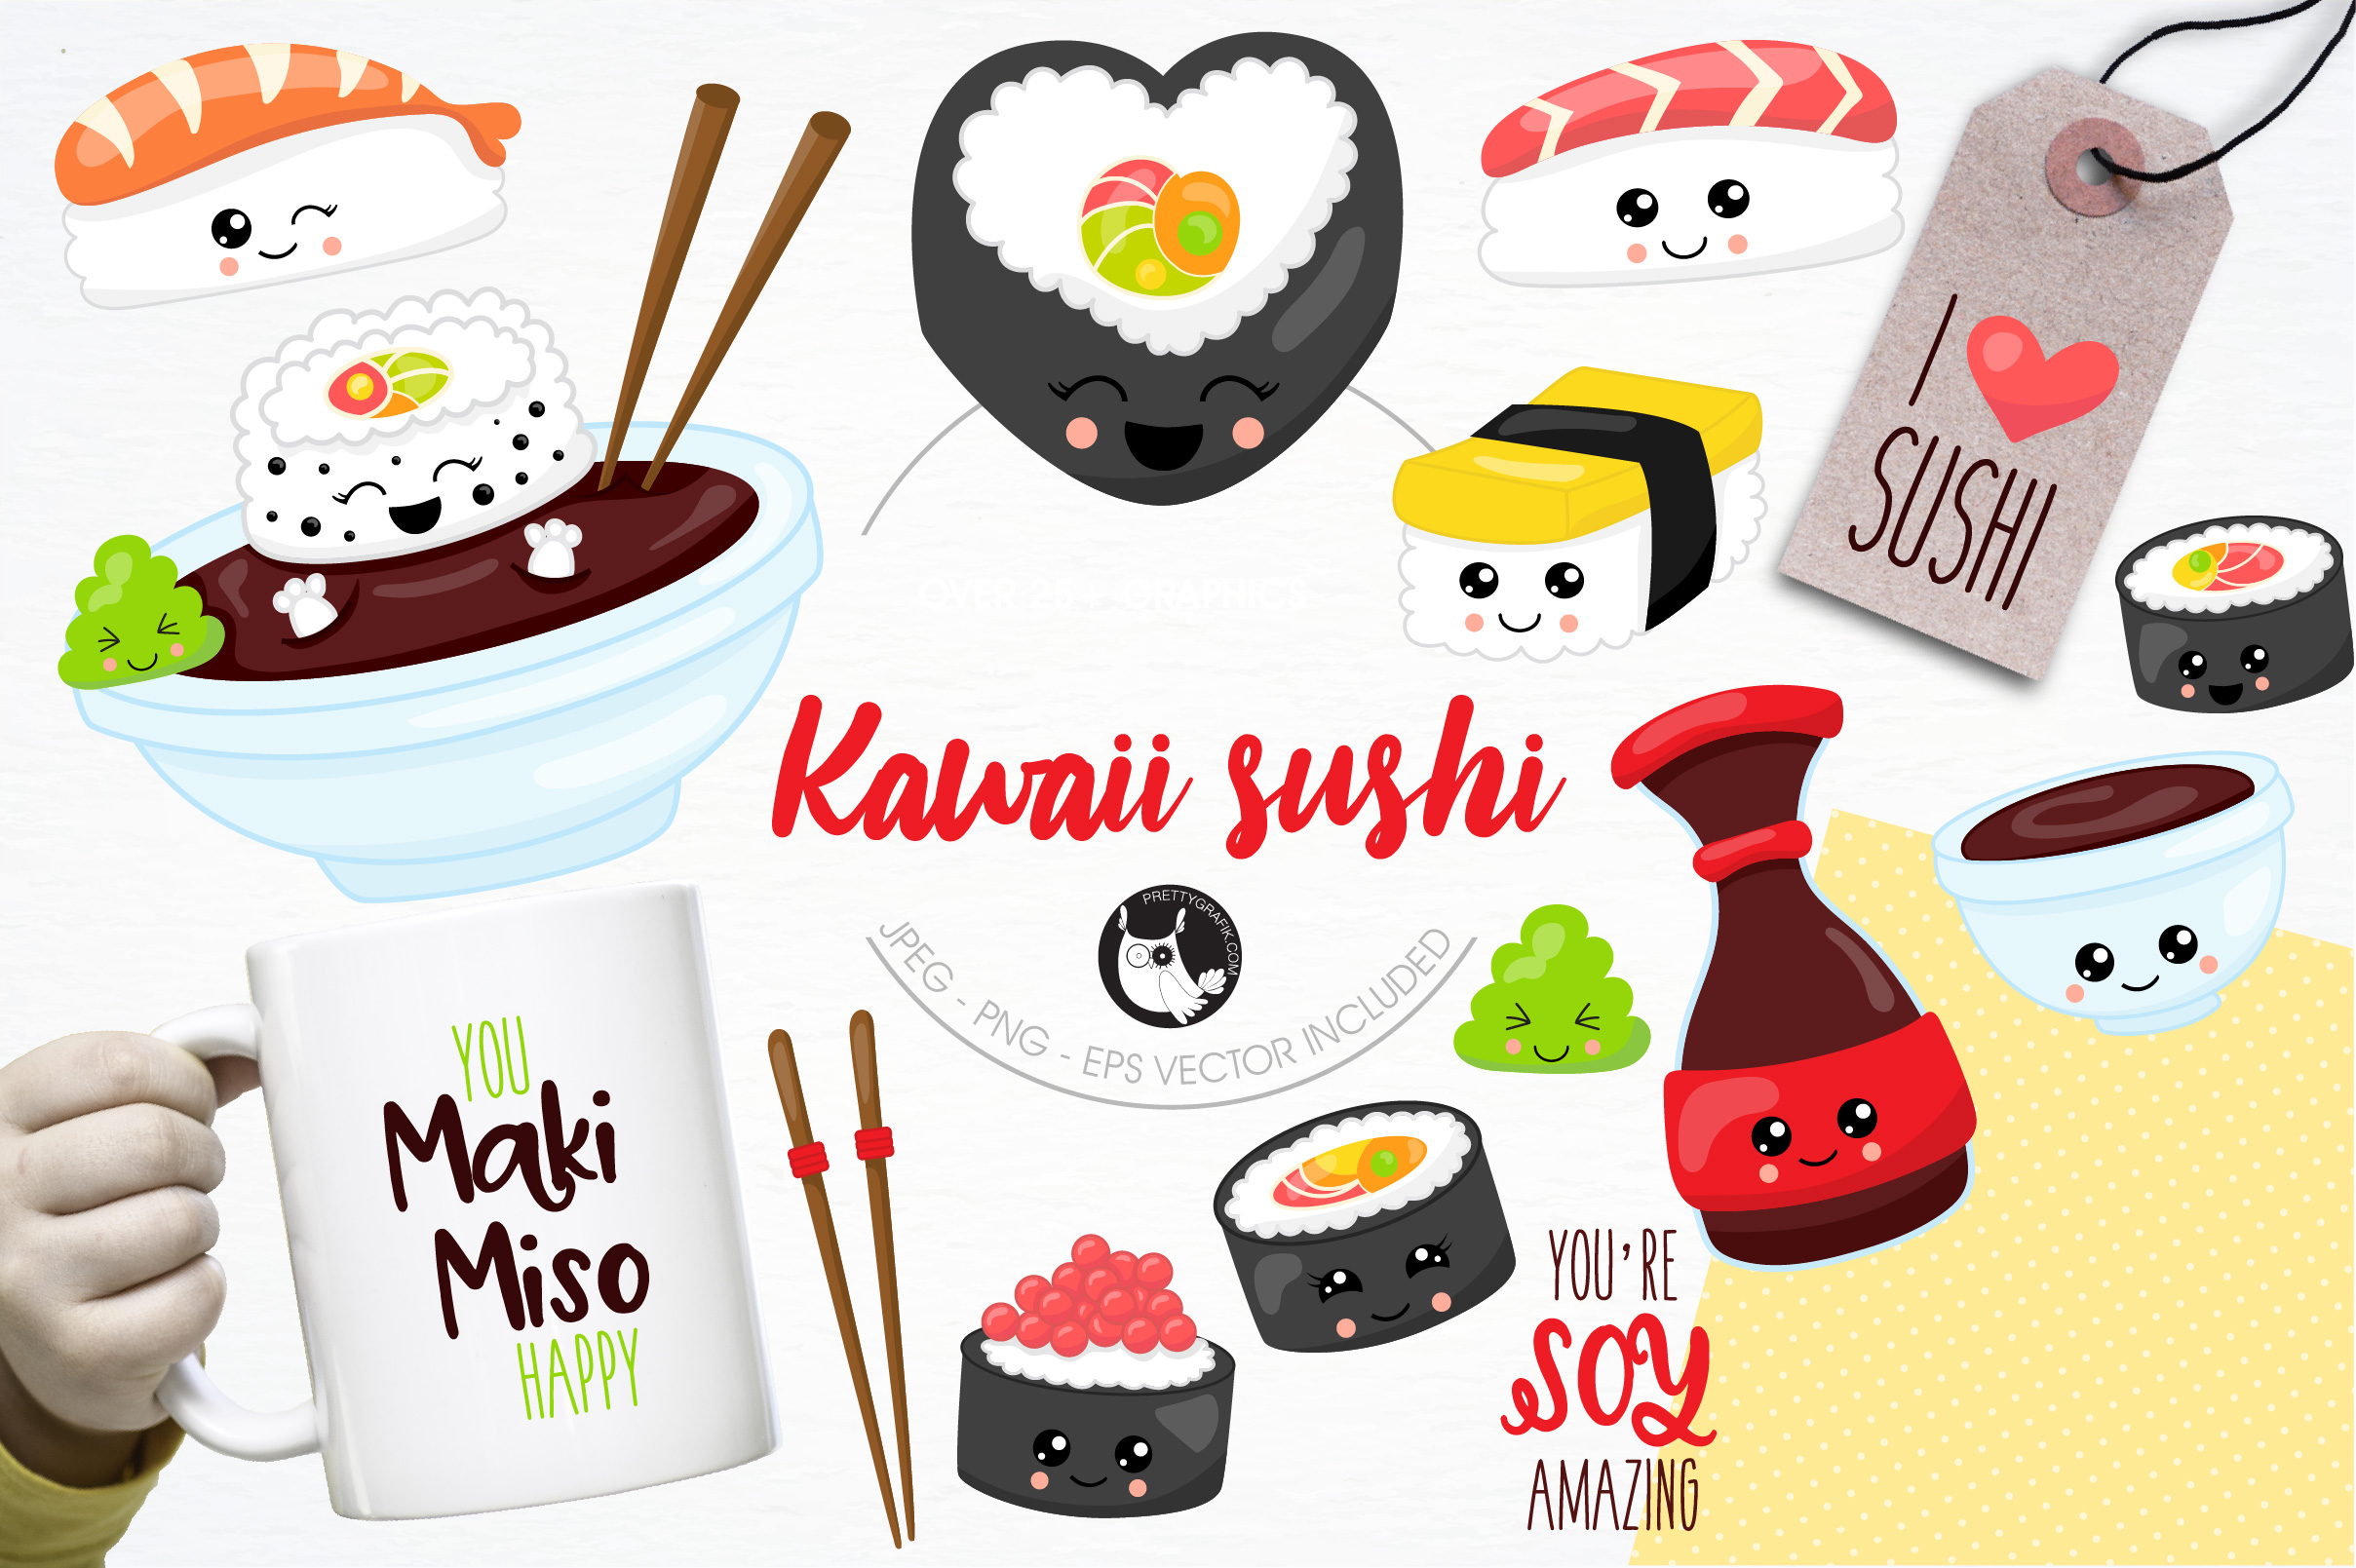 Download Free Kawaii Sushi Graphic By Prettygrafik Creative Fabrica for Cricut Explore, Silhouette and other cutting machines.